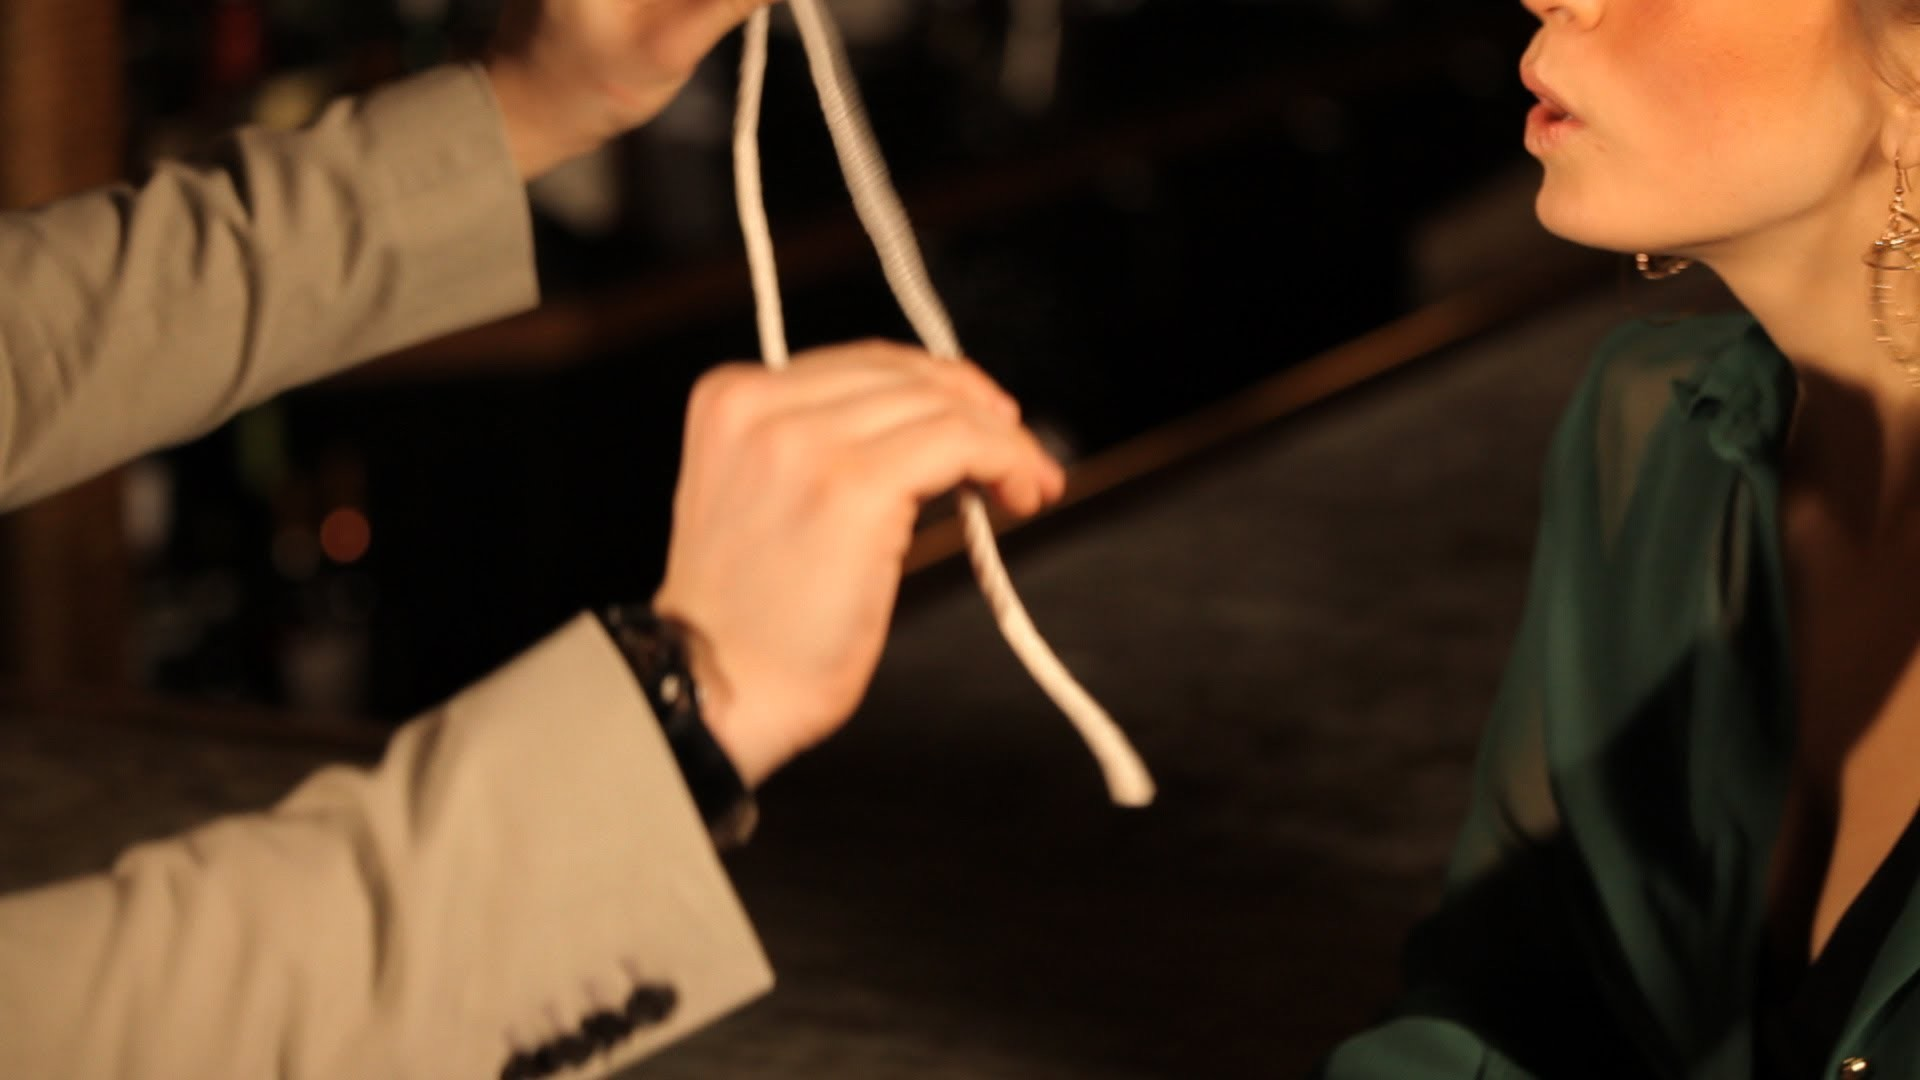 How to Make a Slip Knot Disappear | Table Magic Tricks